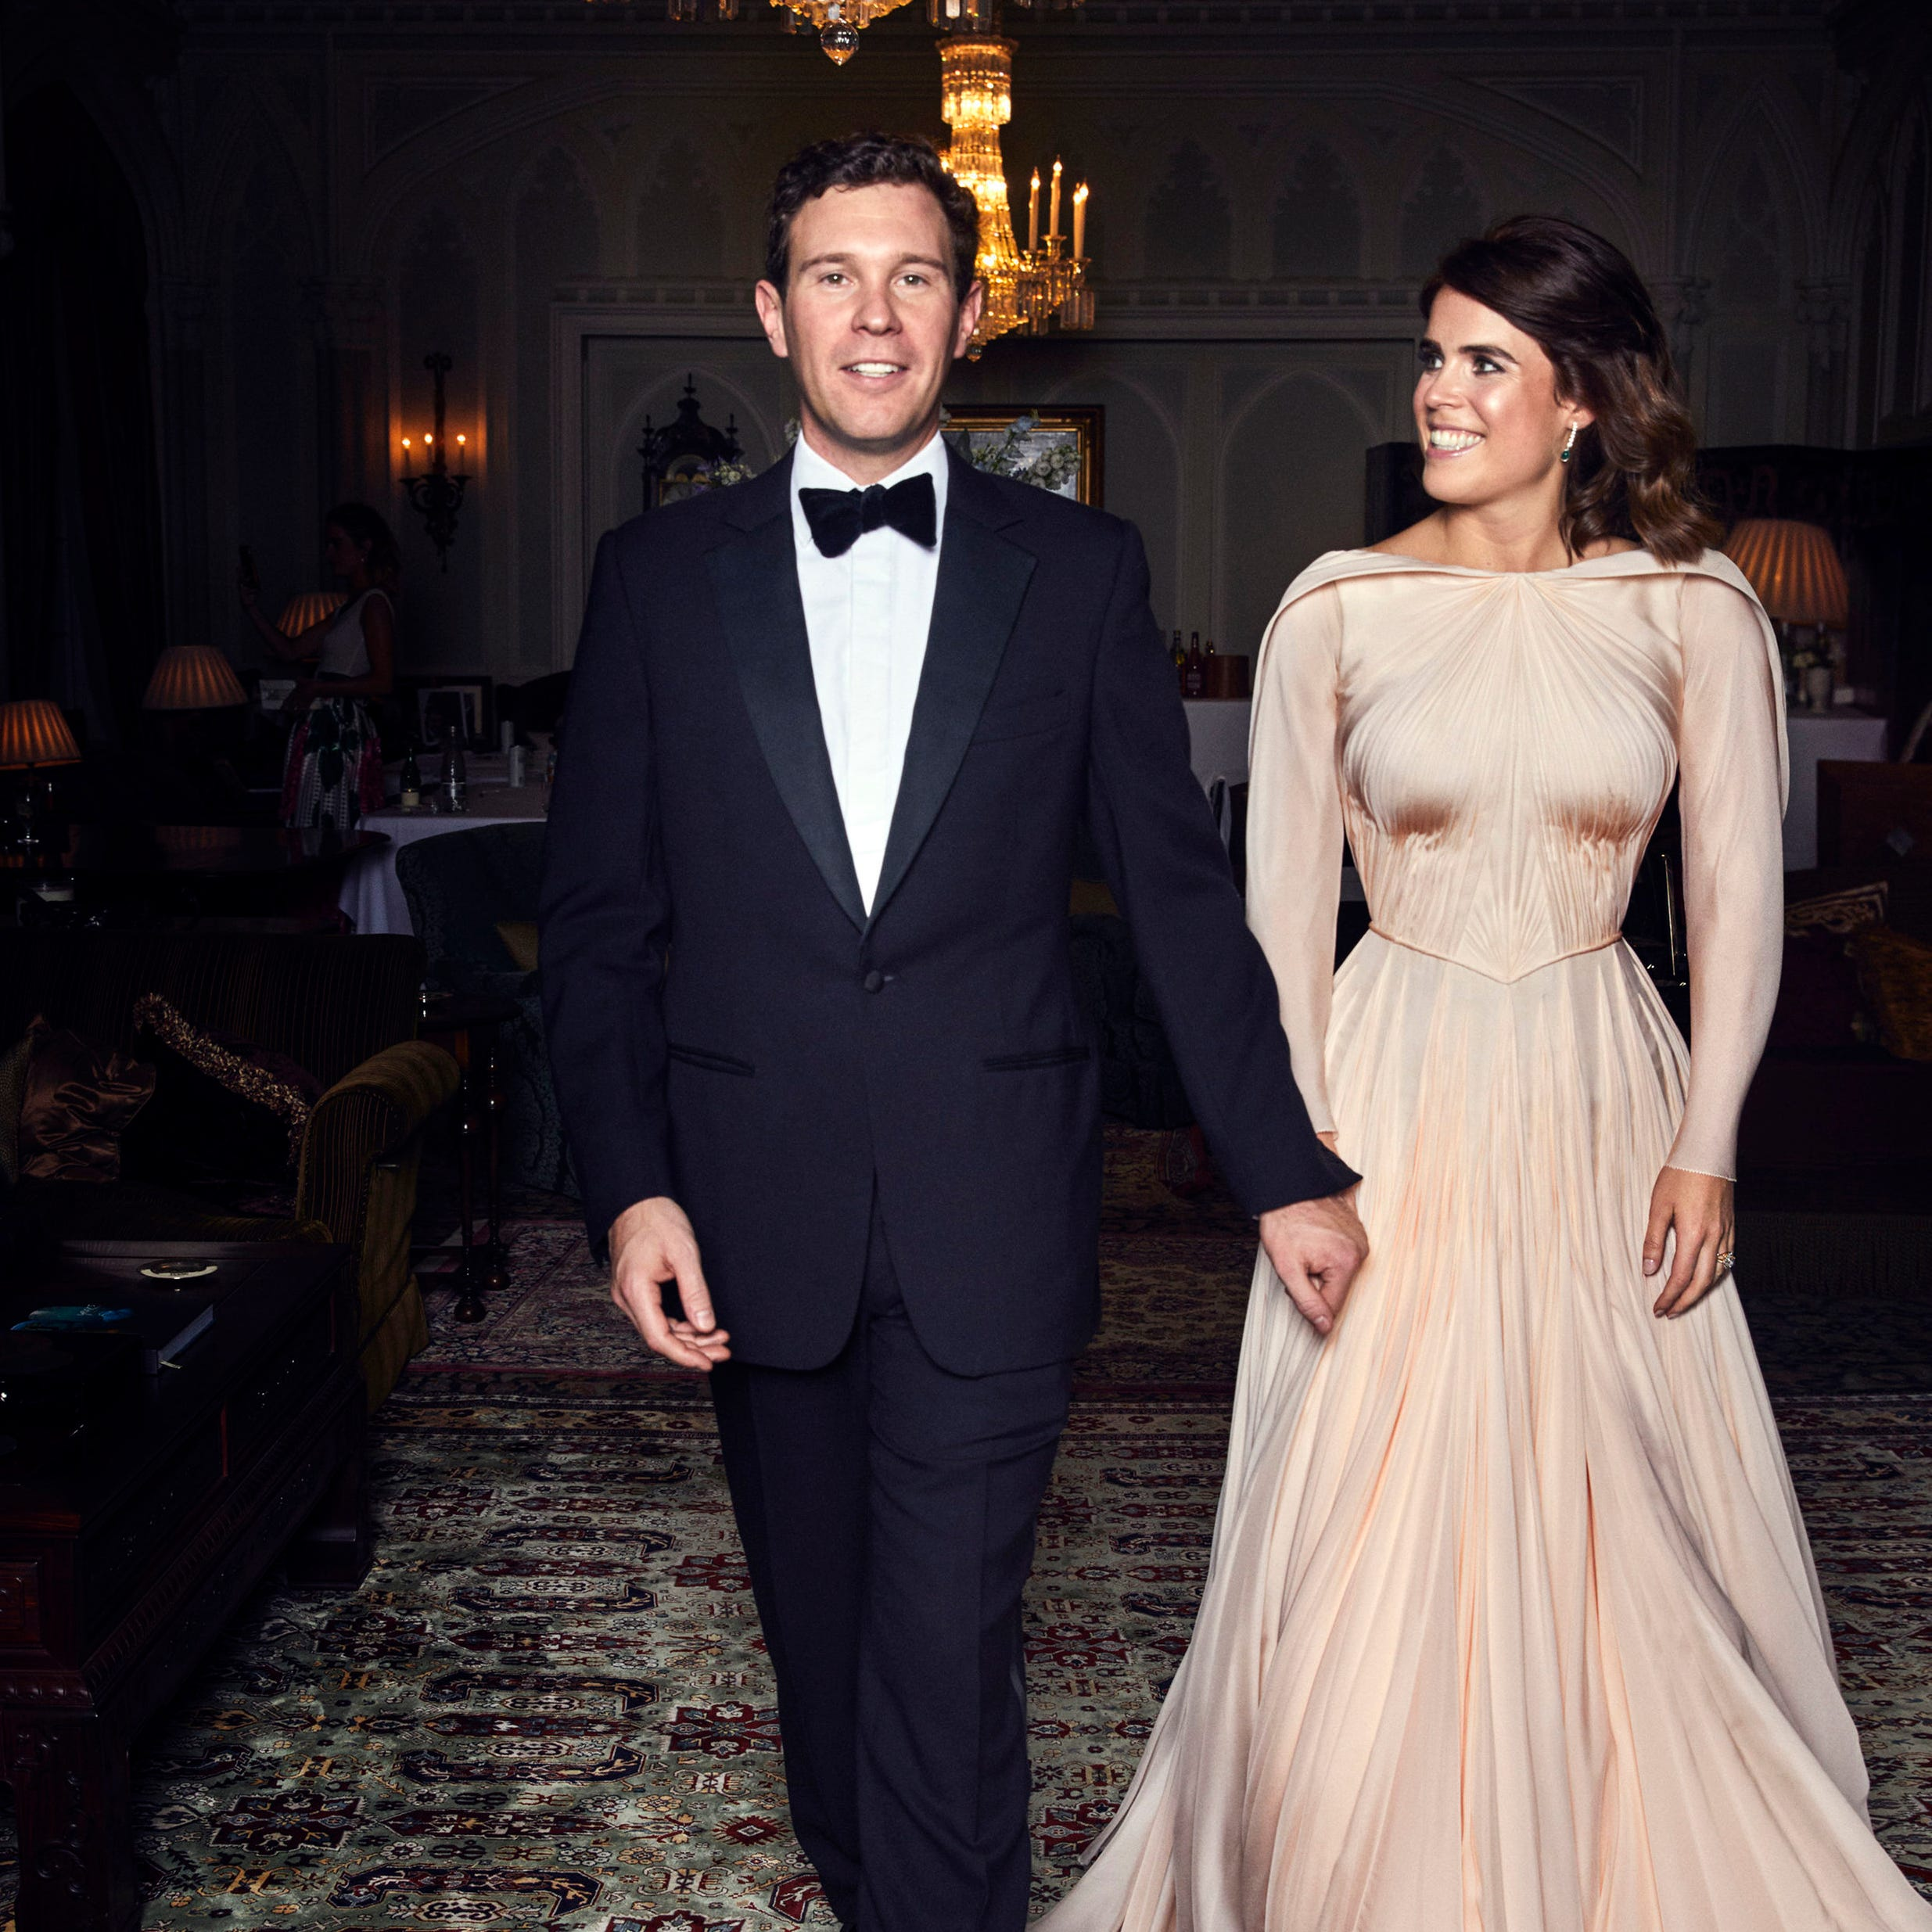 In this photo released on Saturday, Oct. 13 2018 by Buckingham Palace, Britain's Princess Eugenie of York and  Jack Brooksbank are photographed at Royal Lodge, Windsor, England, ahead of the private evening dinner, following their Wedding, at St George's Chapel, Windsor Castle on Friday, Oct. 12, 2018.